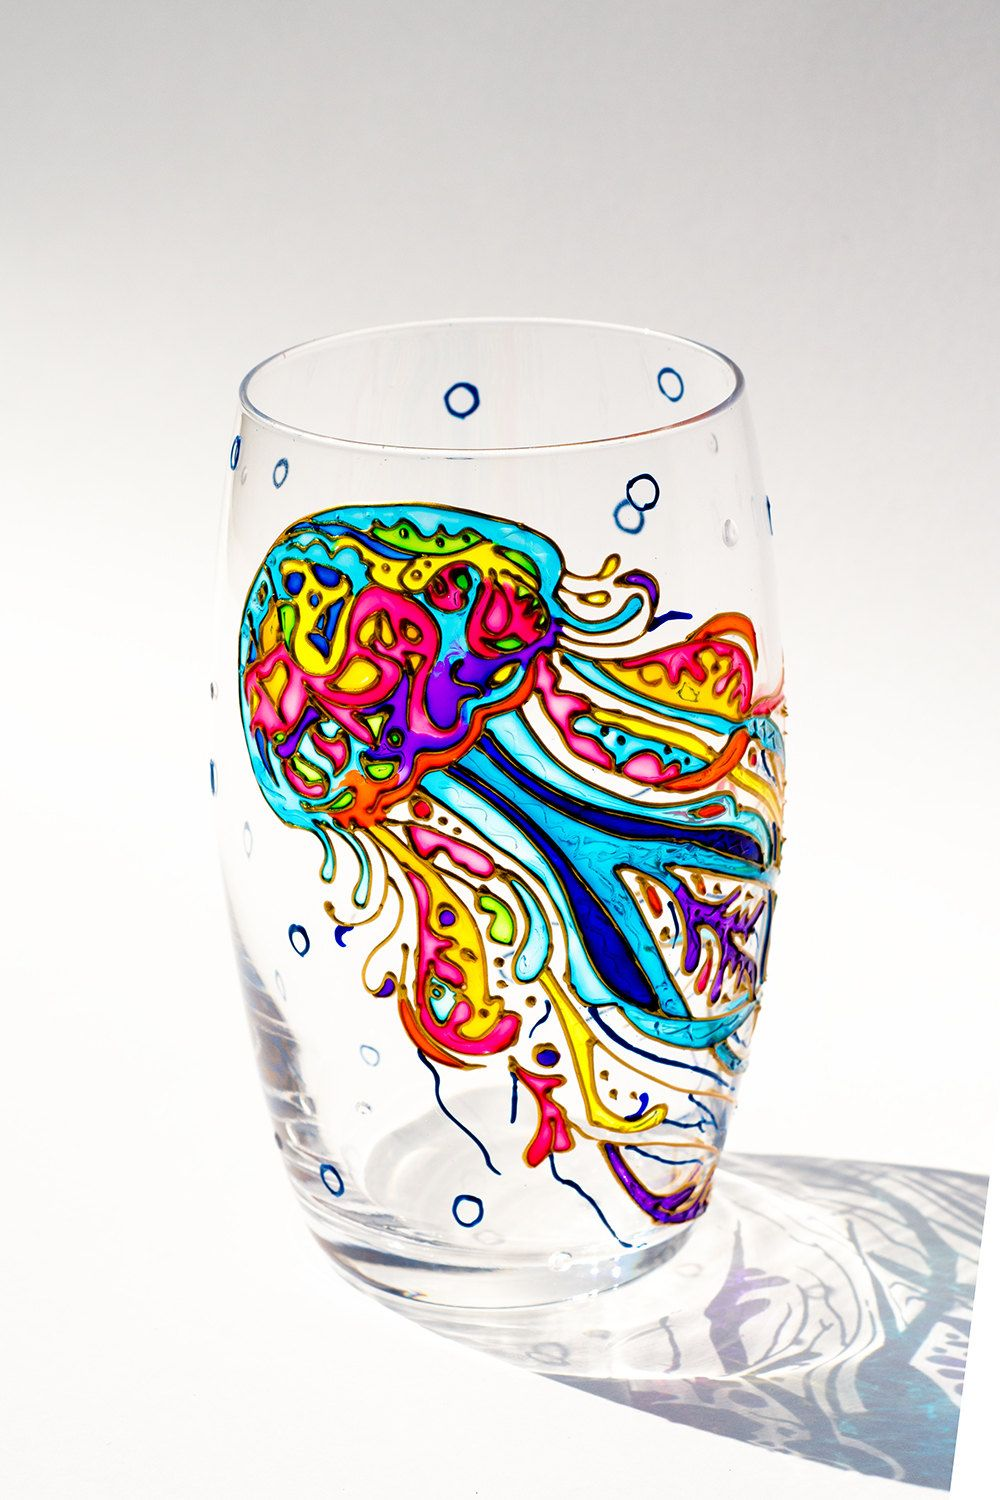 Jellyfish Hand Painted Drinking Glasses, Stemless Wine Glasses ...